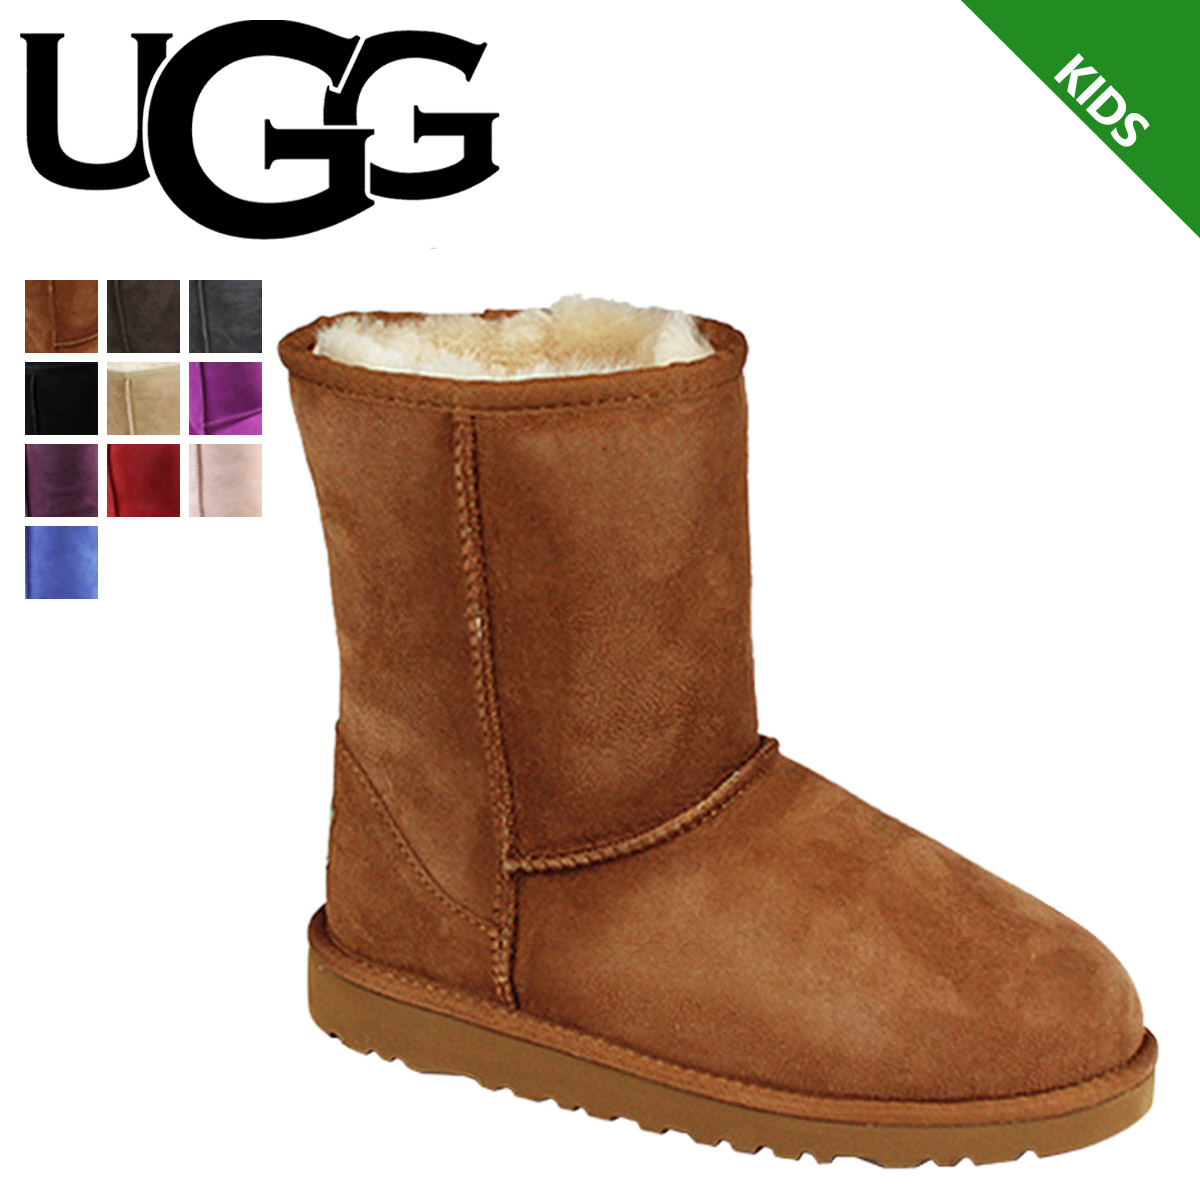 4 Color UGG UGG kids classic boots-5251 K 5251 KIDS CLASSIC kids ladies Sheepskin [1 / 26 back in stock] [regular]